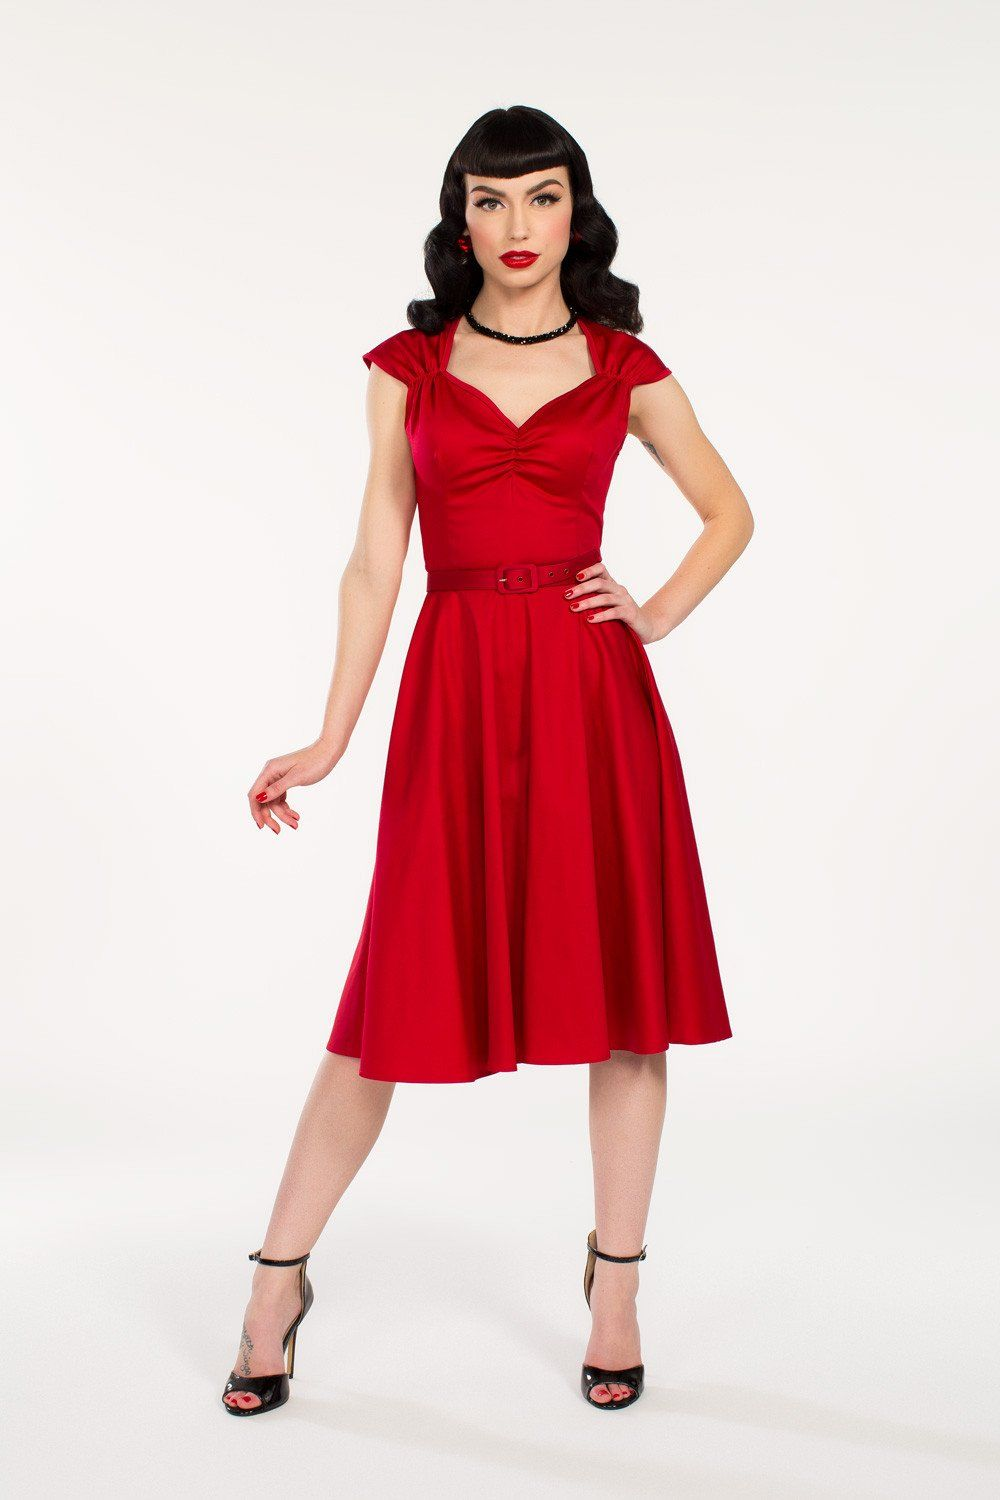 Pinup couture heidi dress in red vintage style dress pinup girl